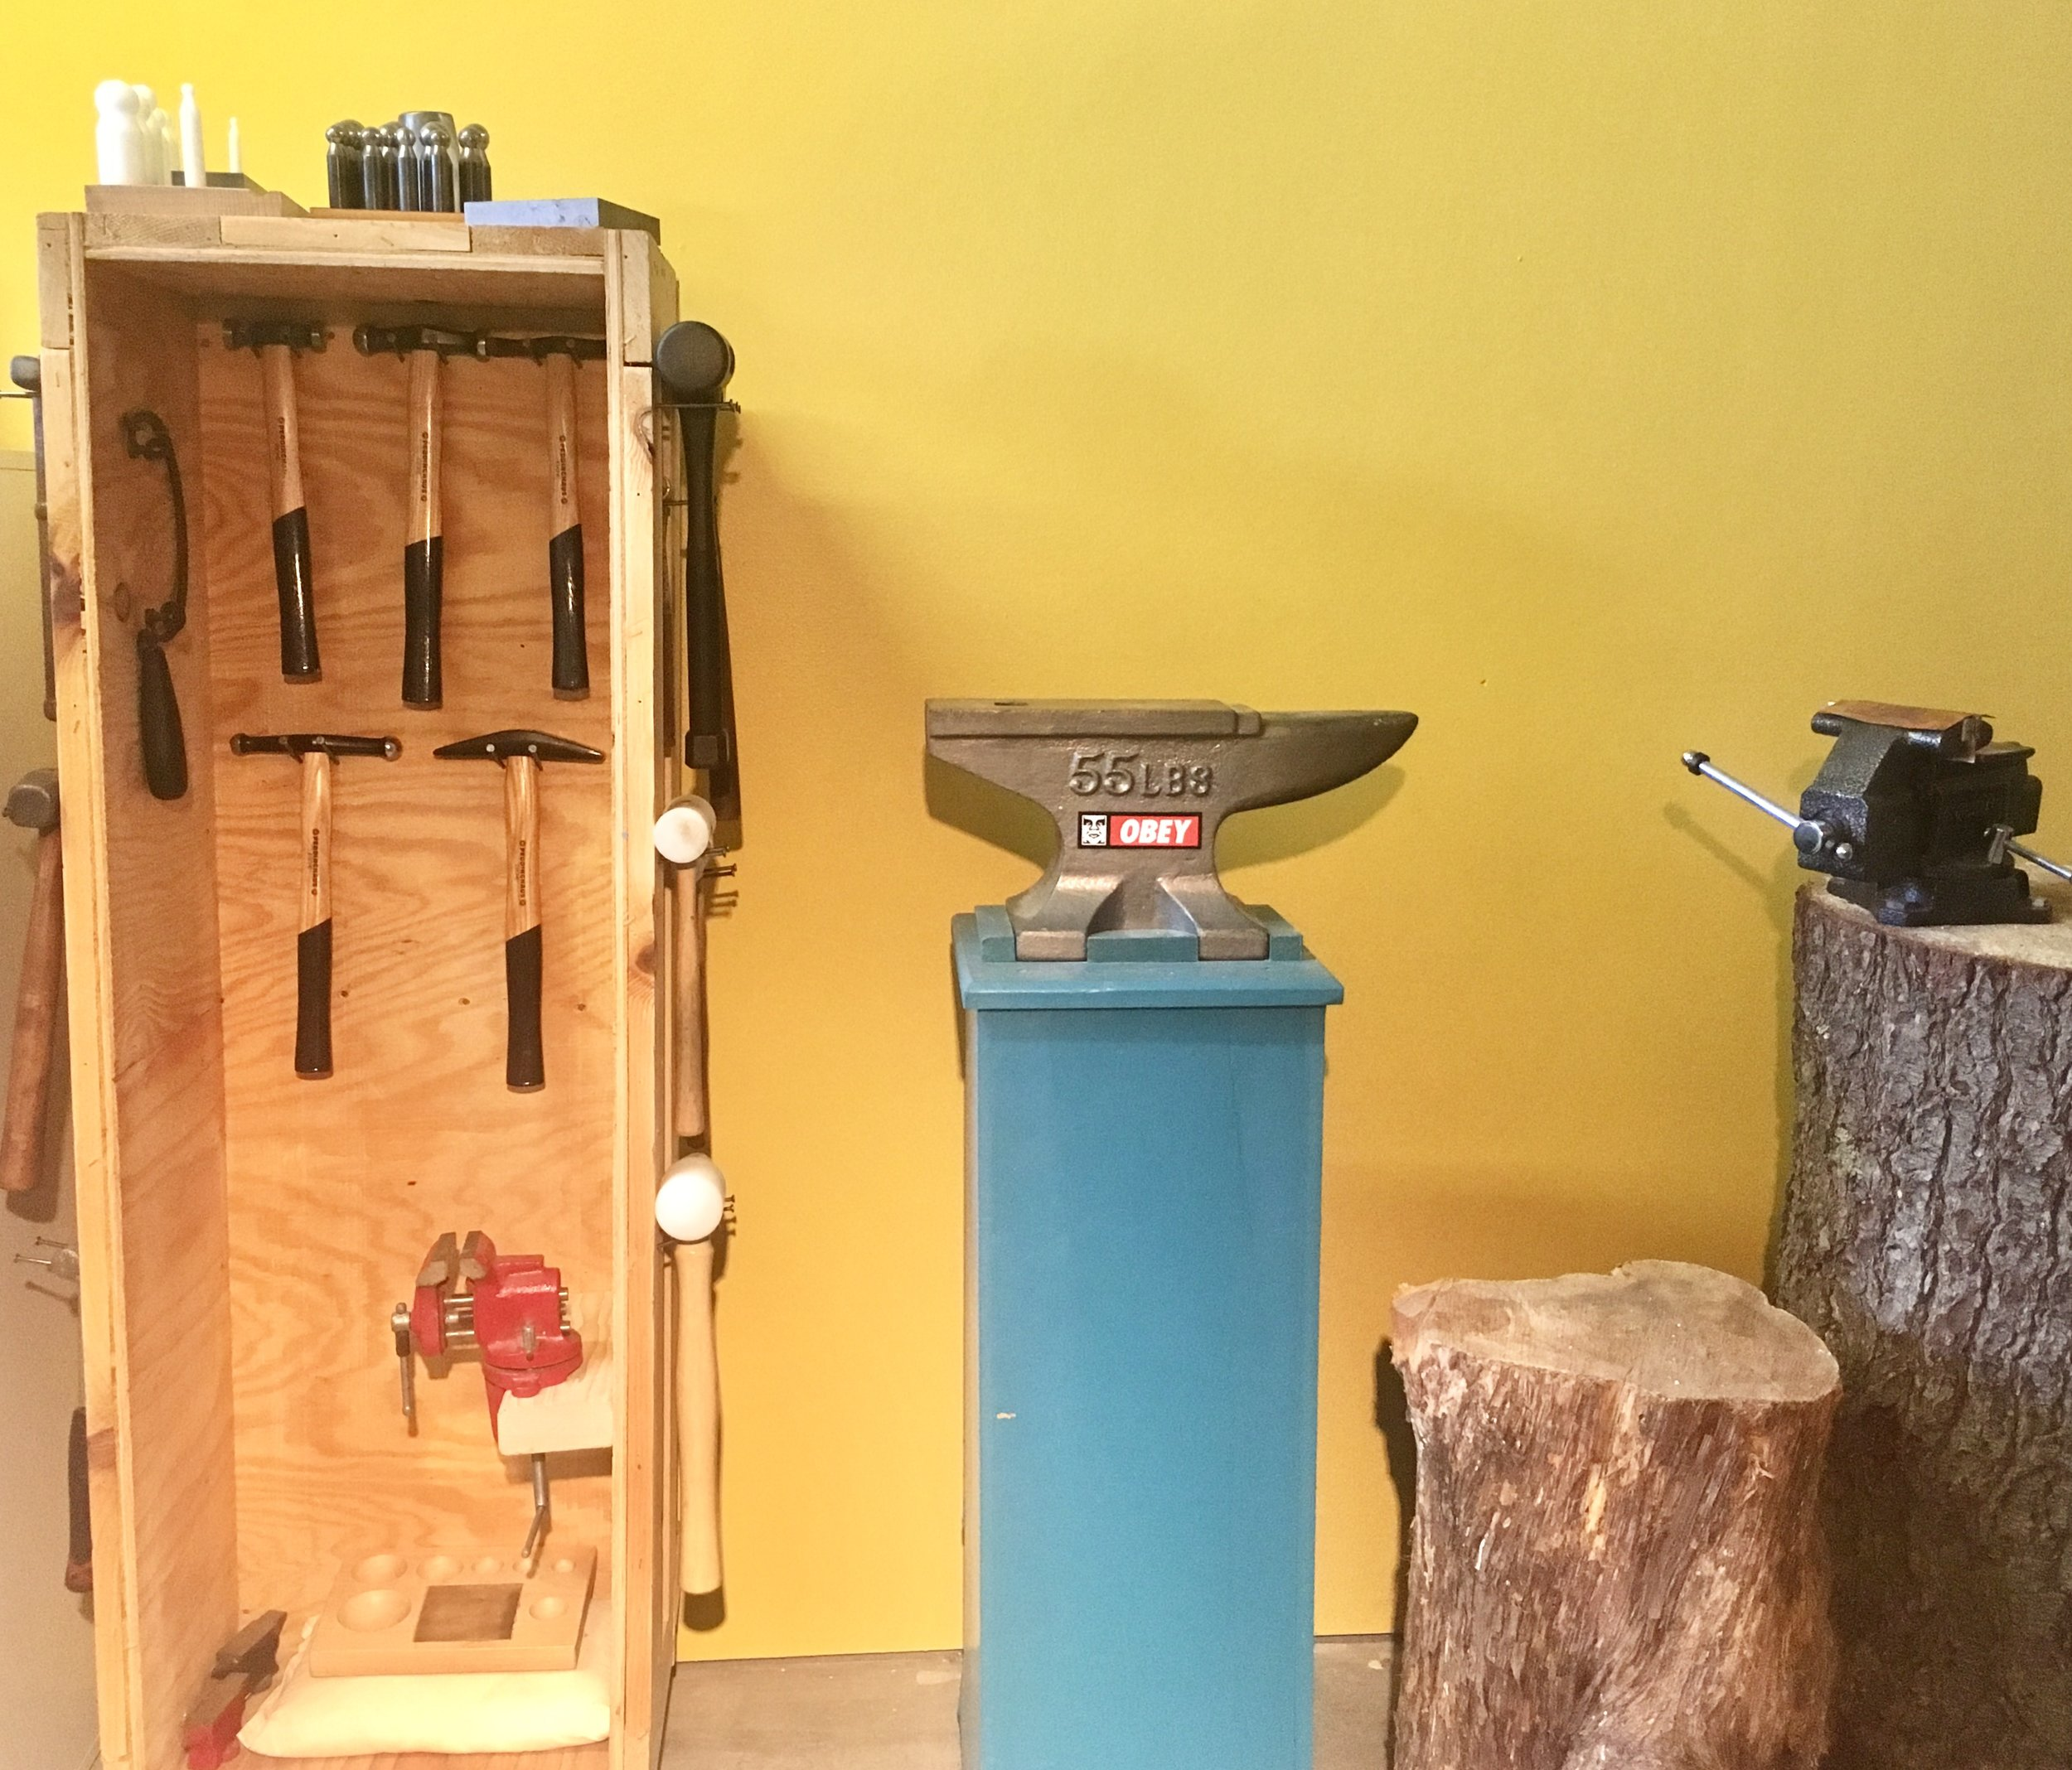 My hammer and tool cabinet is complete and nestled in nicely with my anvil and stumps.